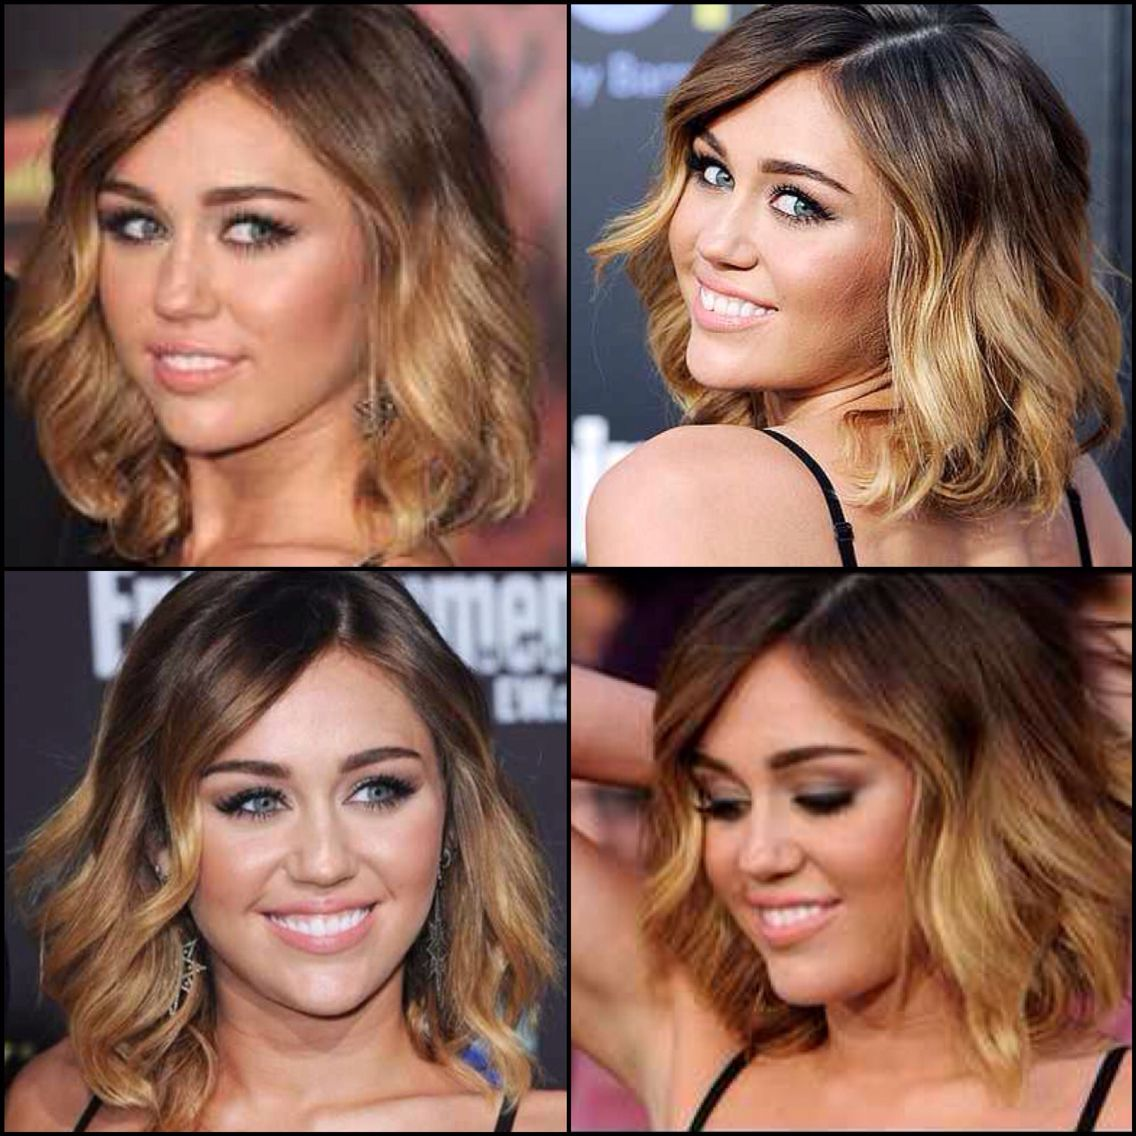 I don't like Miley but I love the haircut and color!